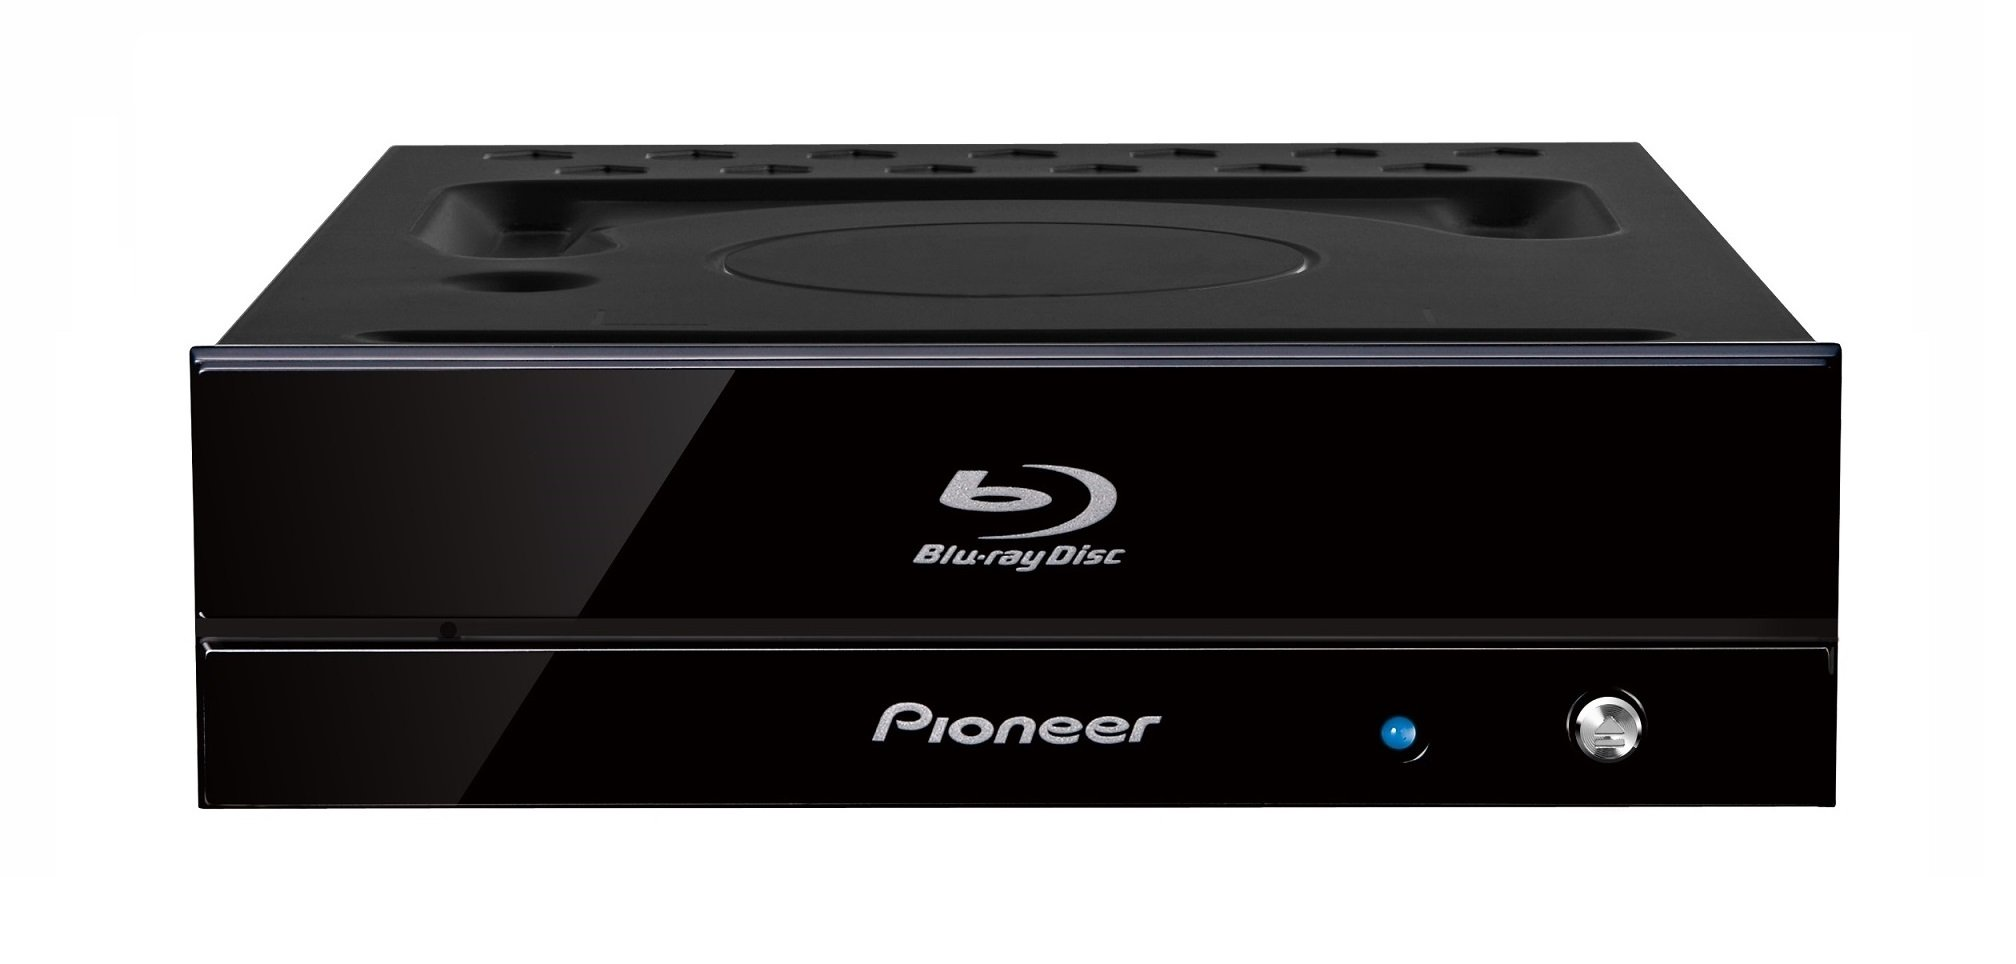 Pioneer Built-in BD Drive (BDXL Support) BDR-S12J-X Japan Import by Pioneer (Image #1)